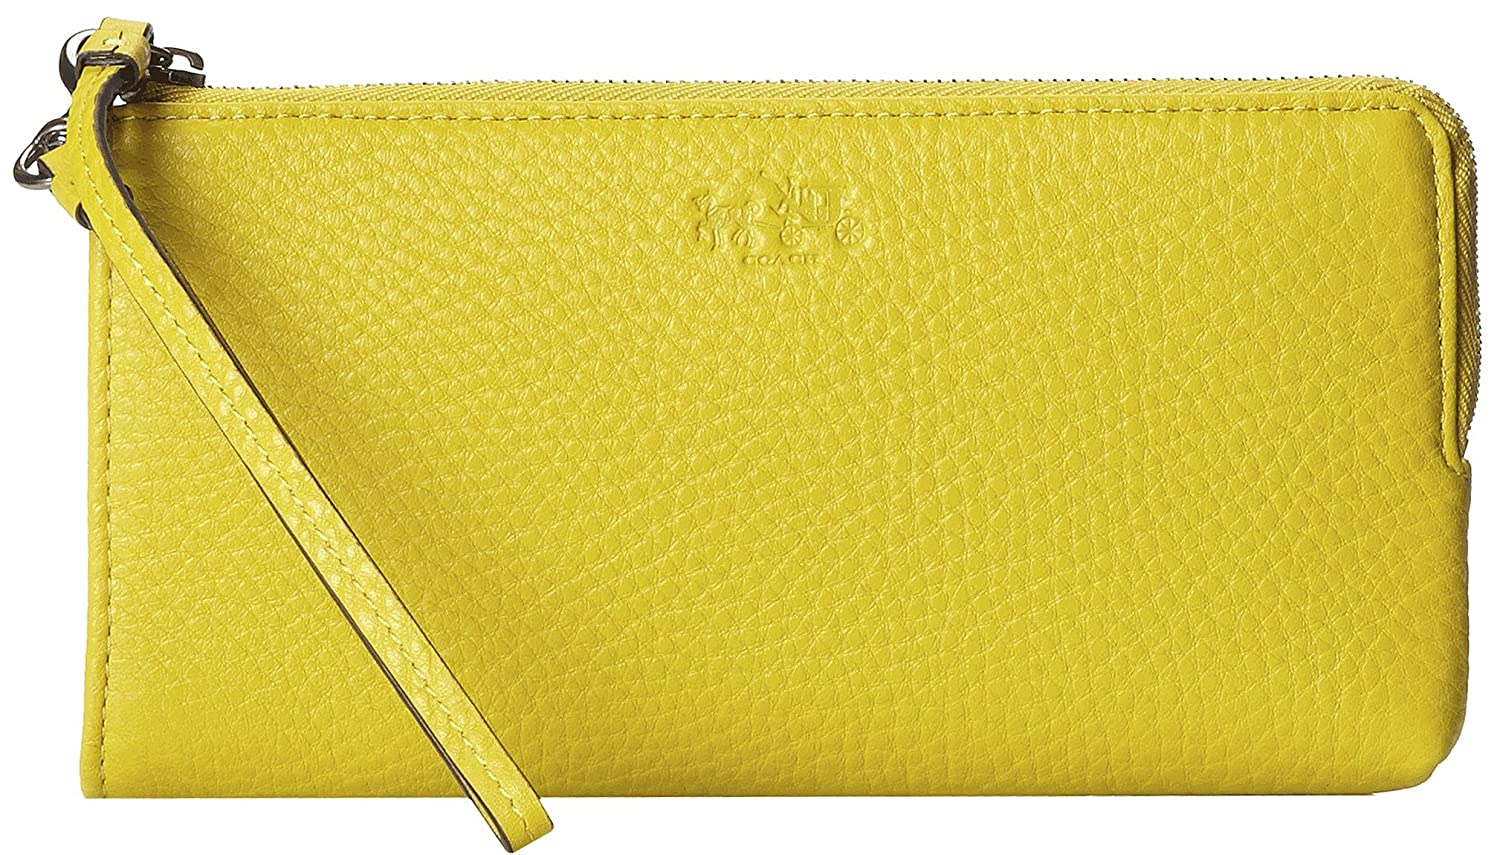 Coach Bleecker Leather Zippy Wristlet Wallet 51981 (Saffron)